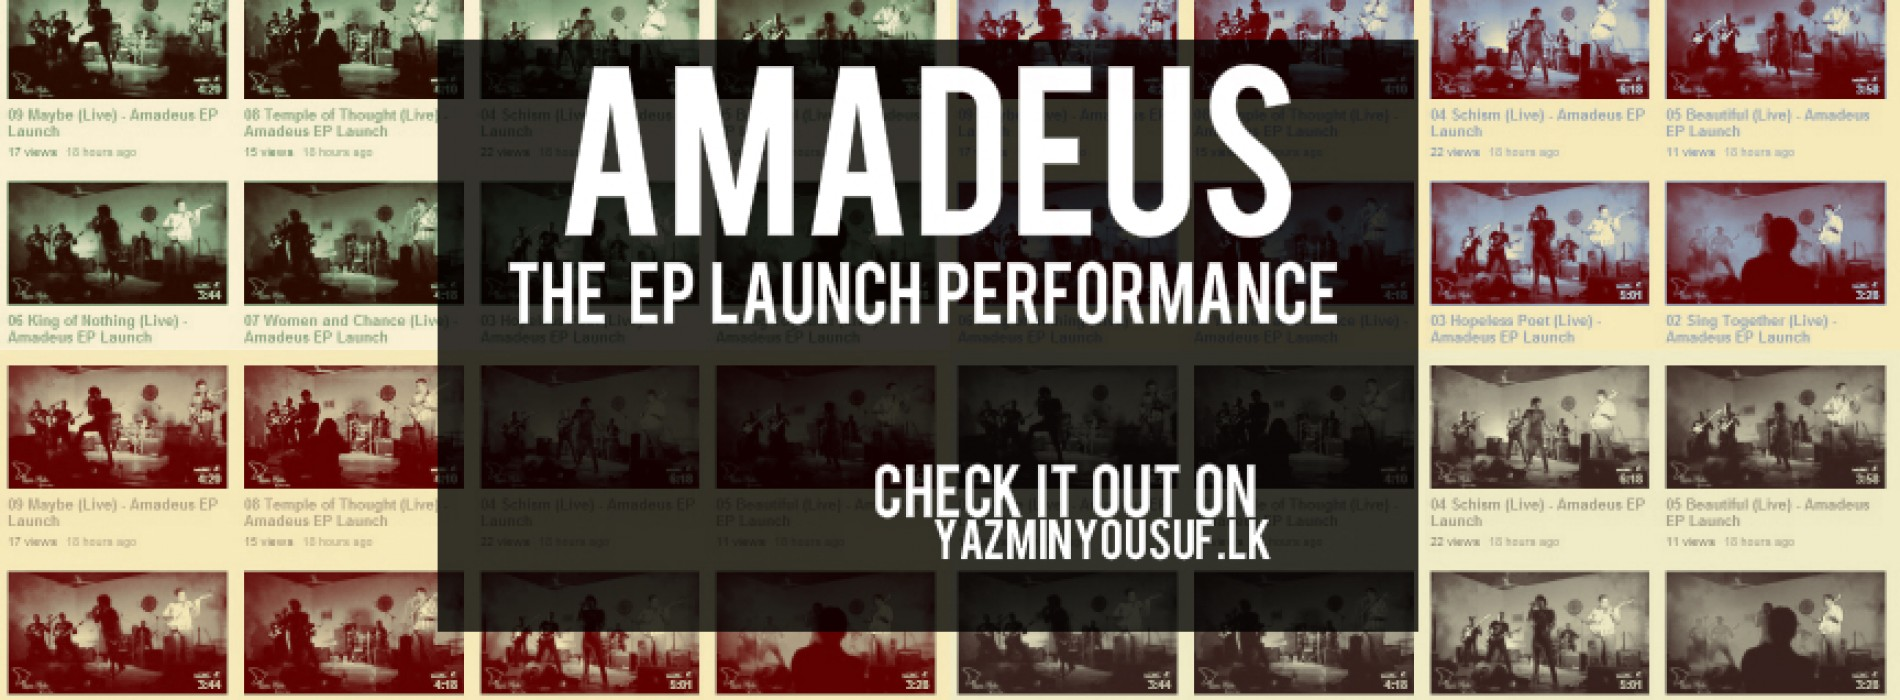 Videos From The Amadeus EP Launch